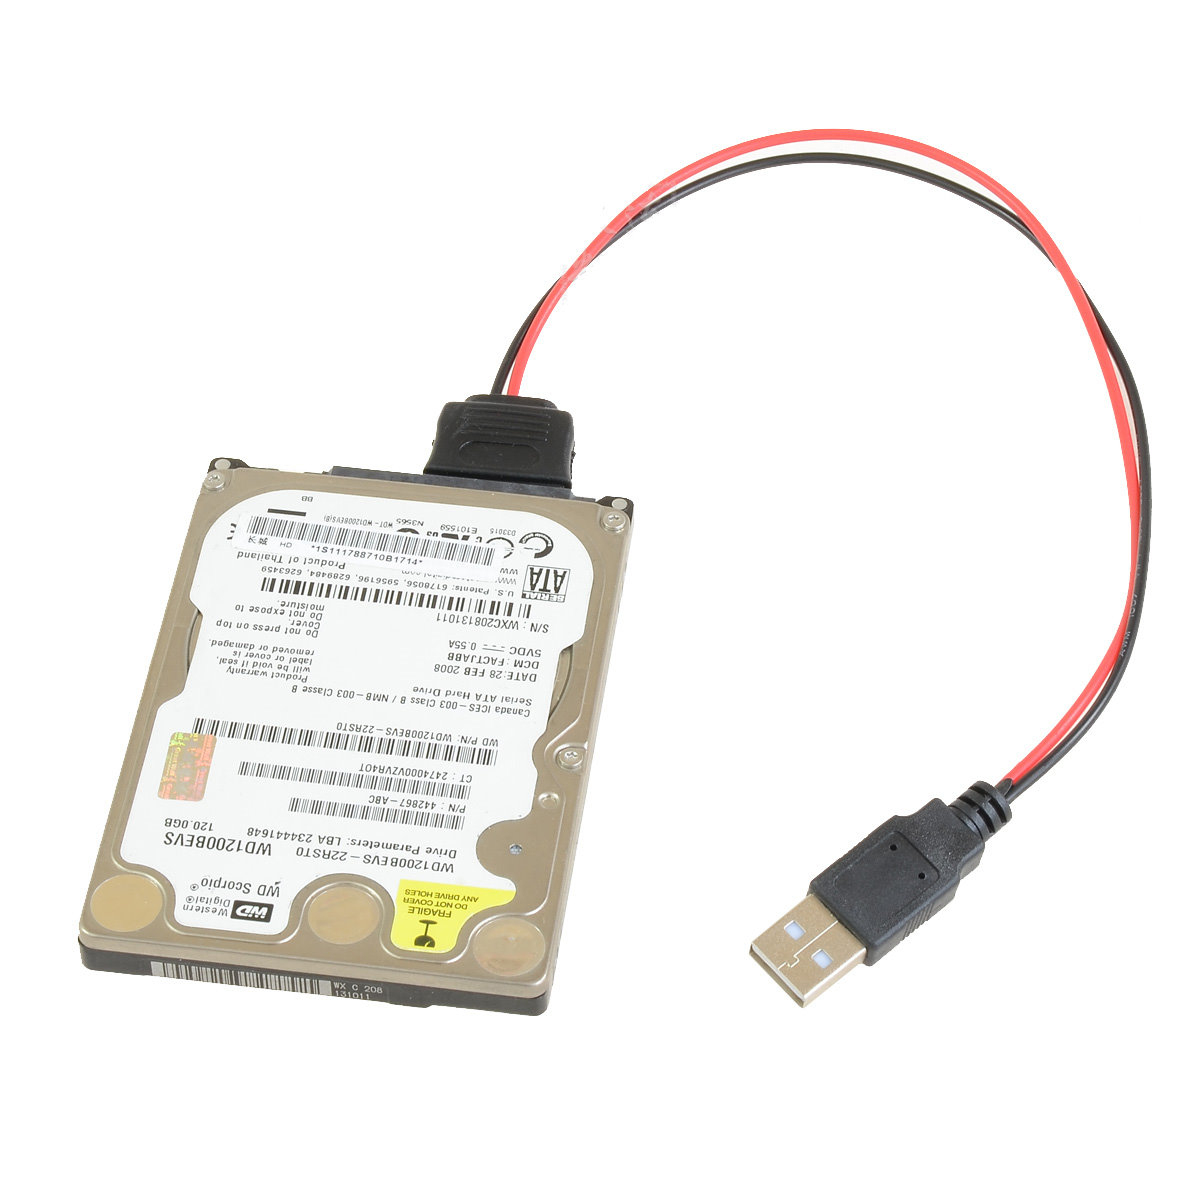 Usb To 2.5 Ssd 5-Pin Sata Power Adapter Cable (20Cm) - Moddiy - Usb 2.0 To Sata Adaptor Cable Wiring Diagram